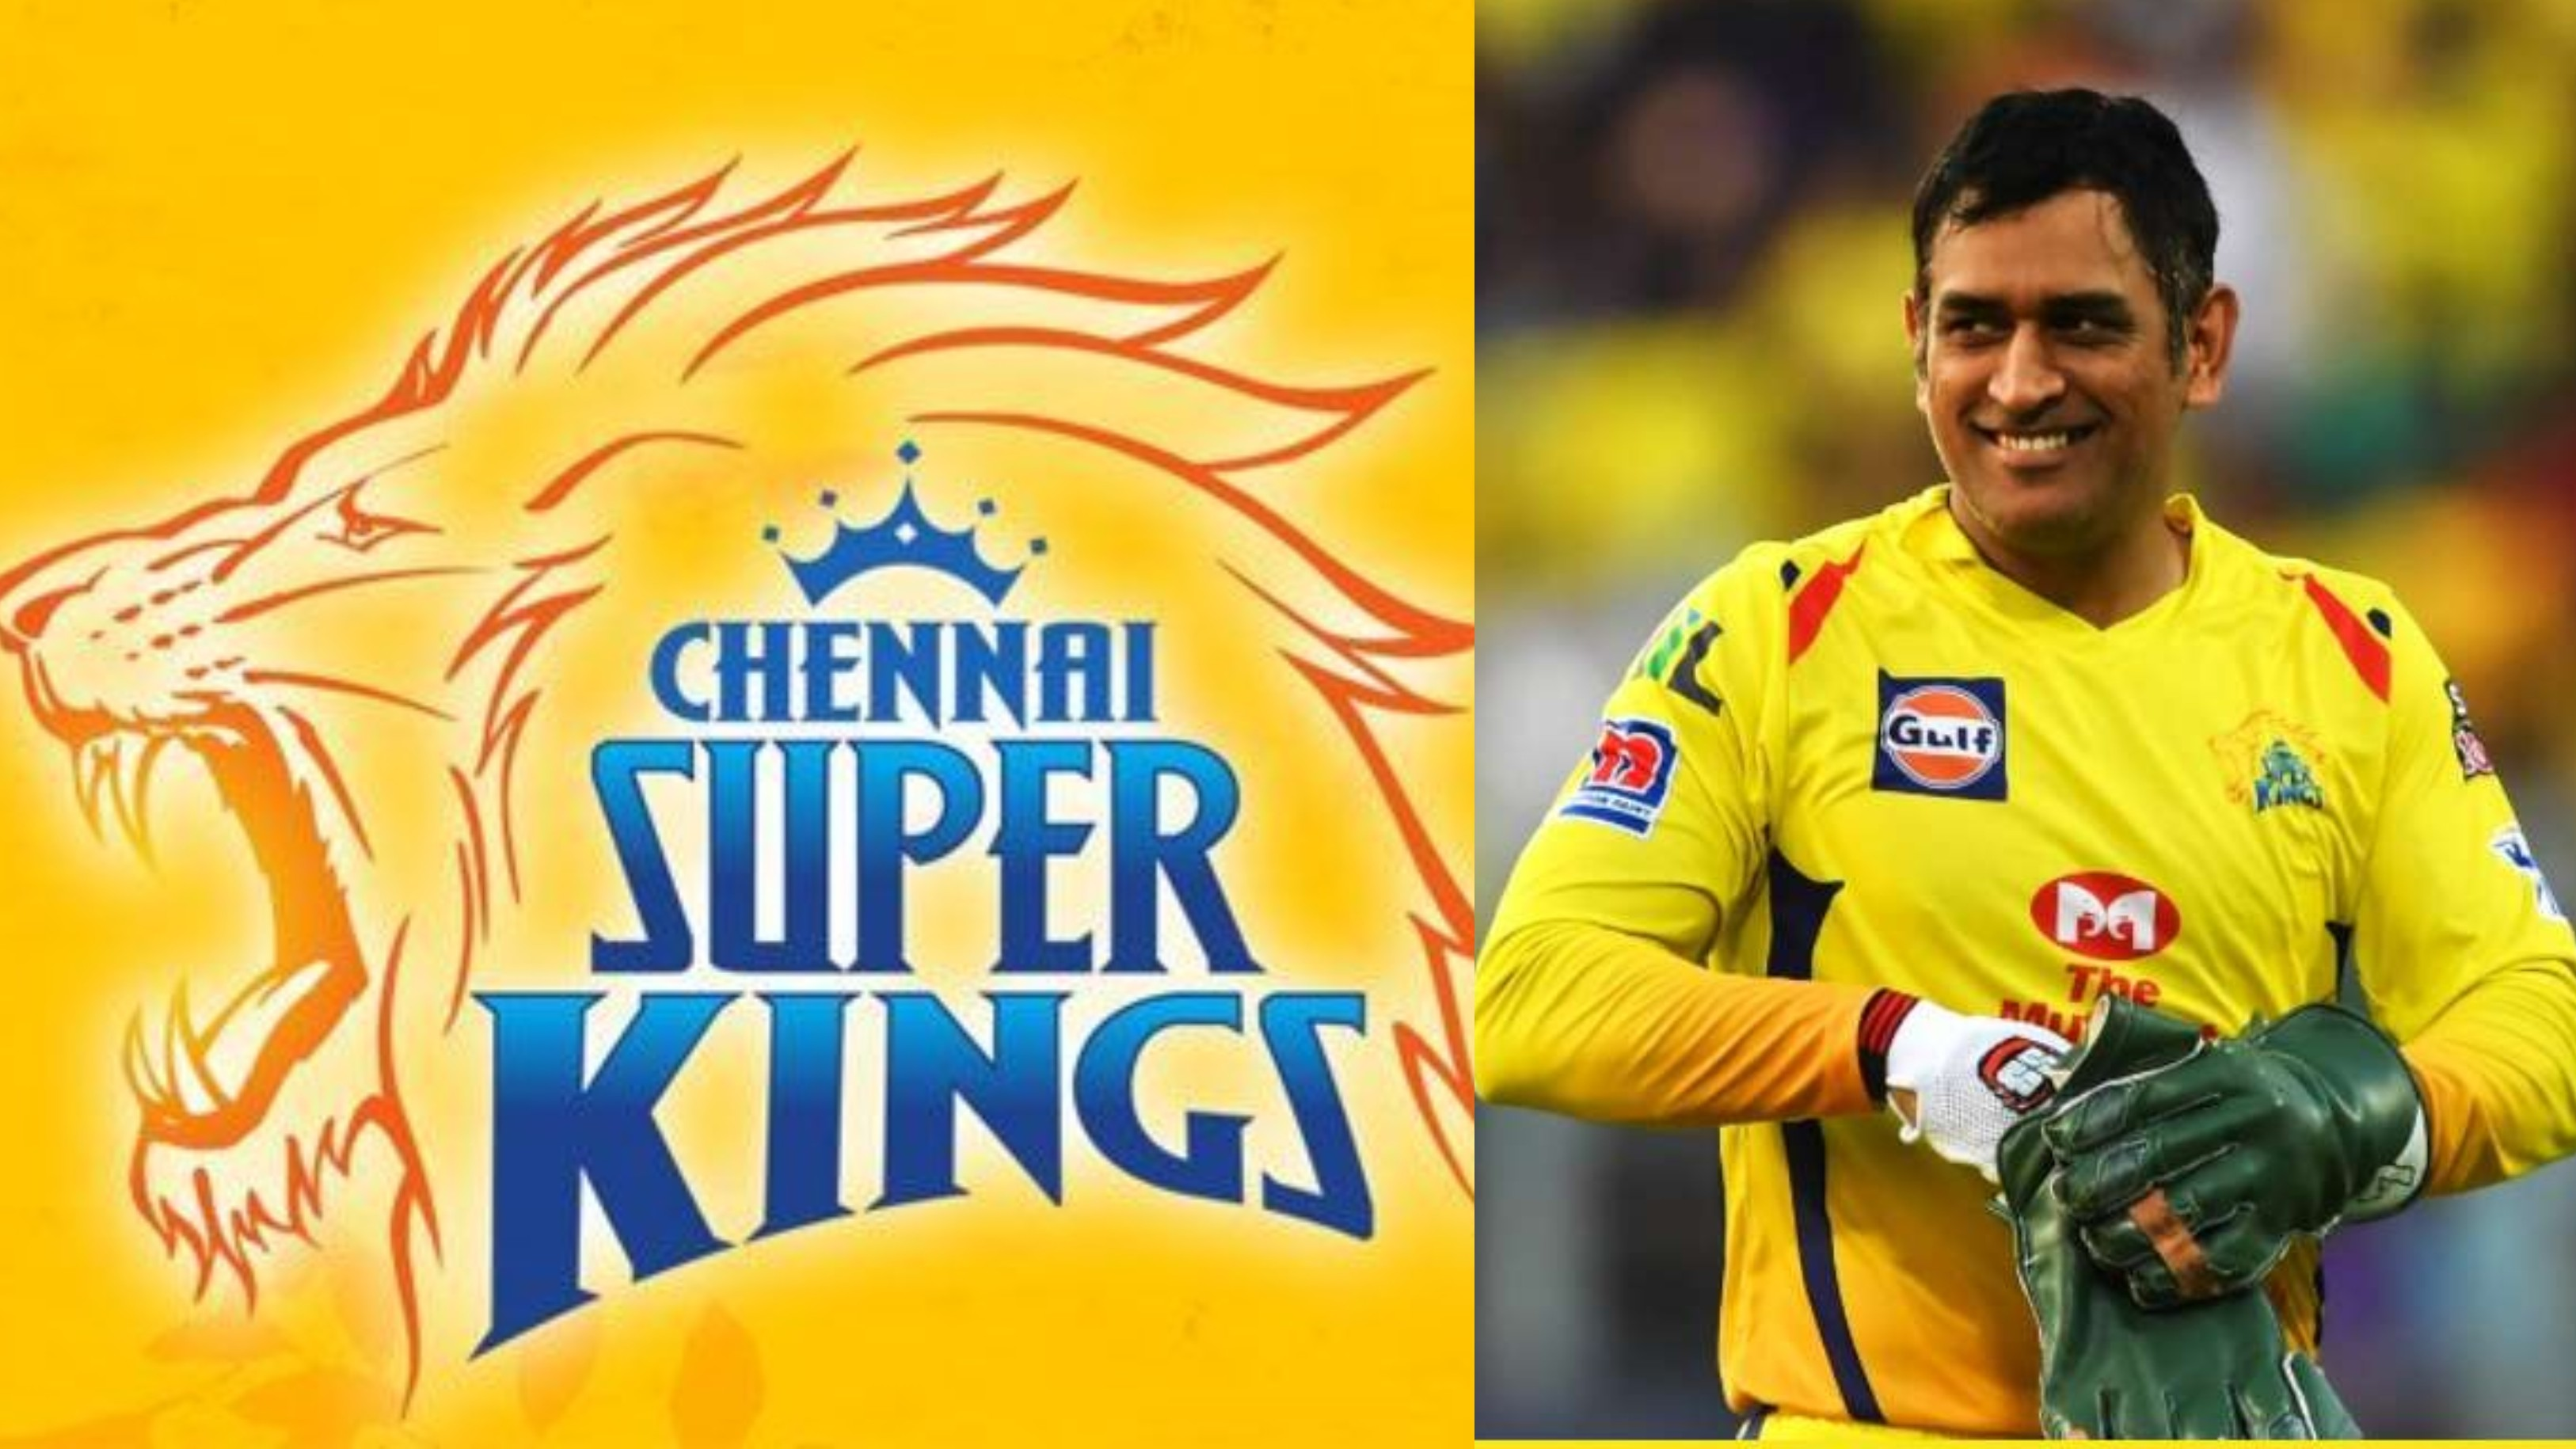 WATCH - CSK share video of